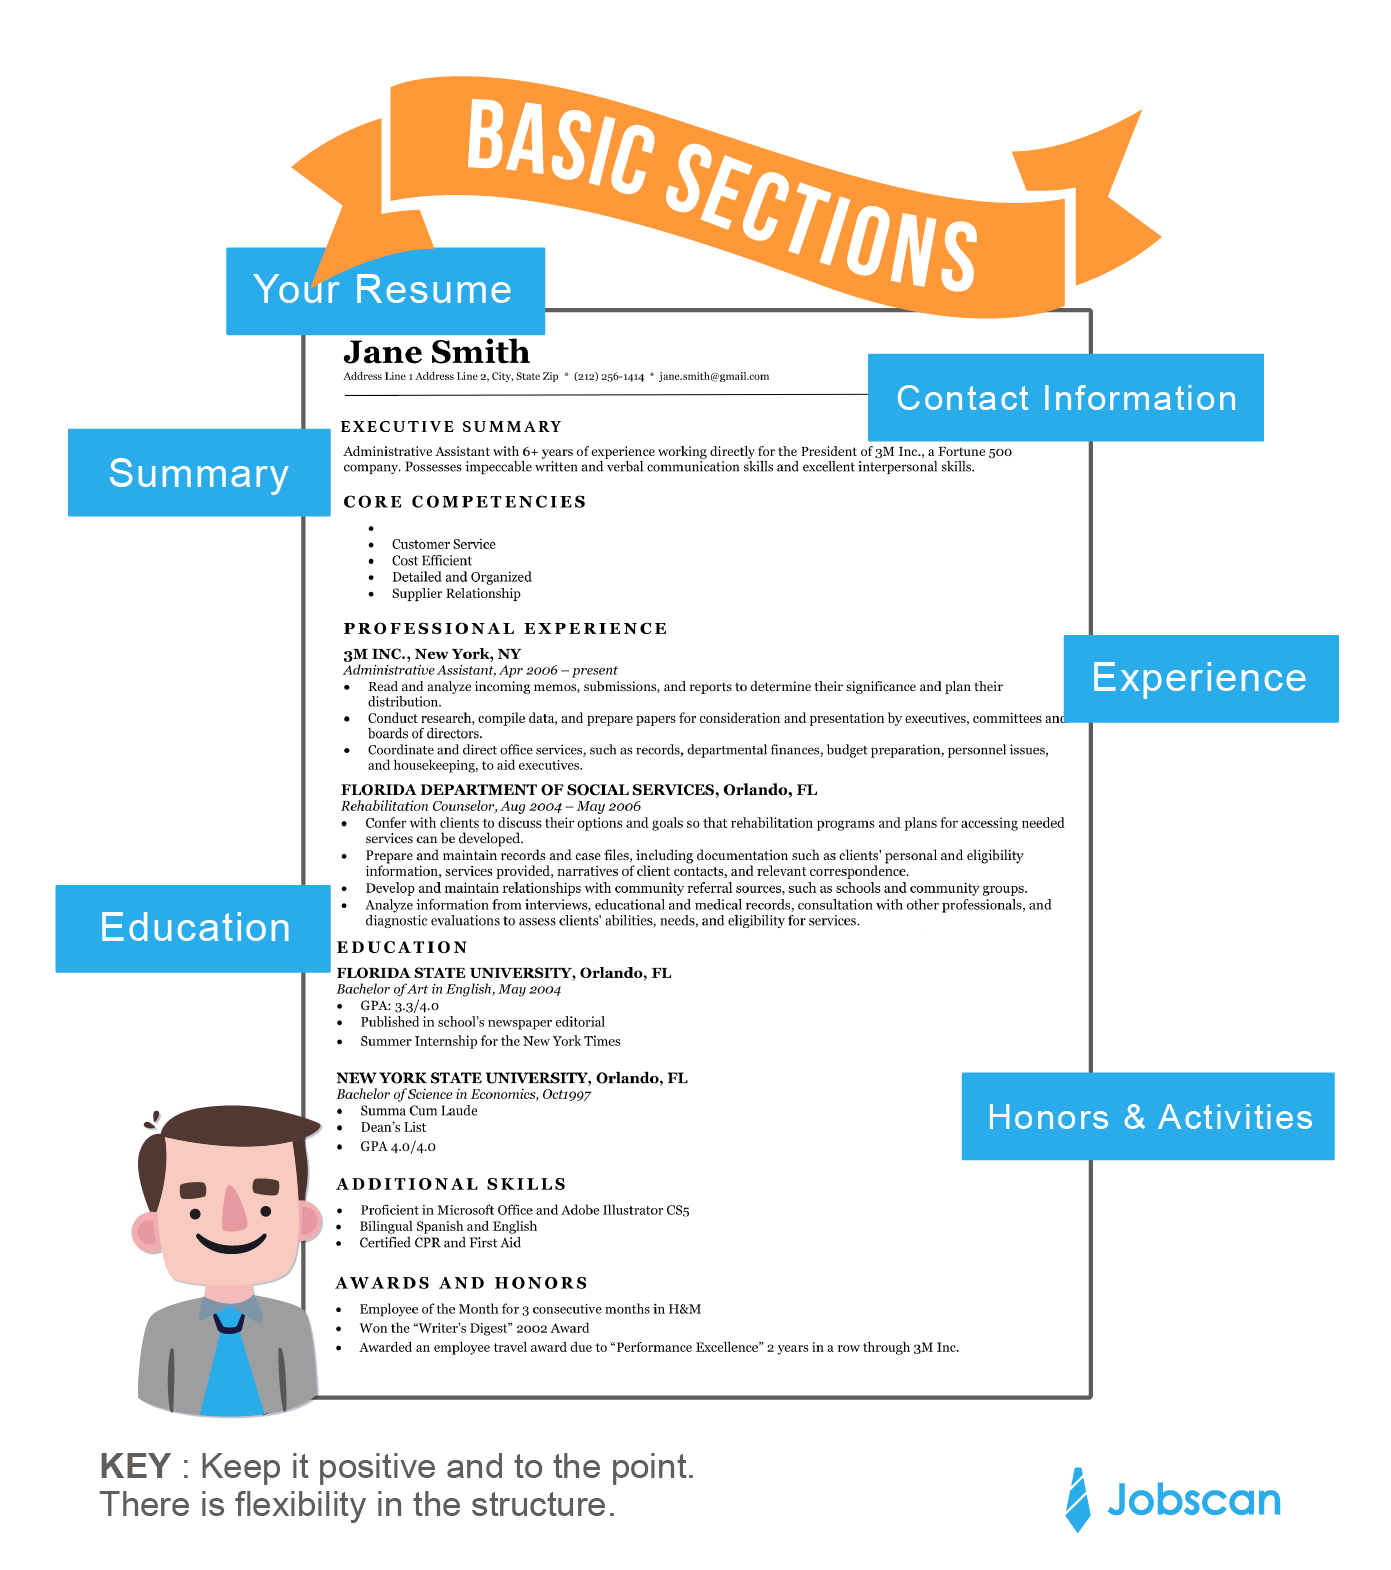 basic resume sections